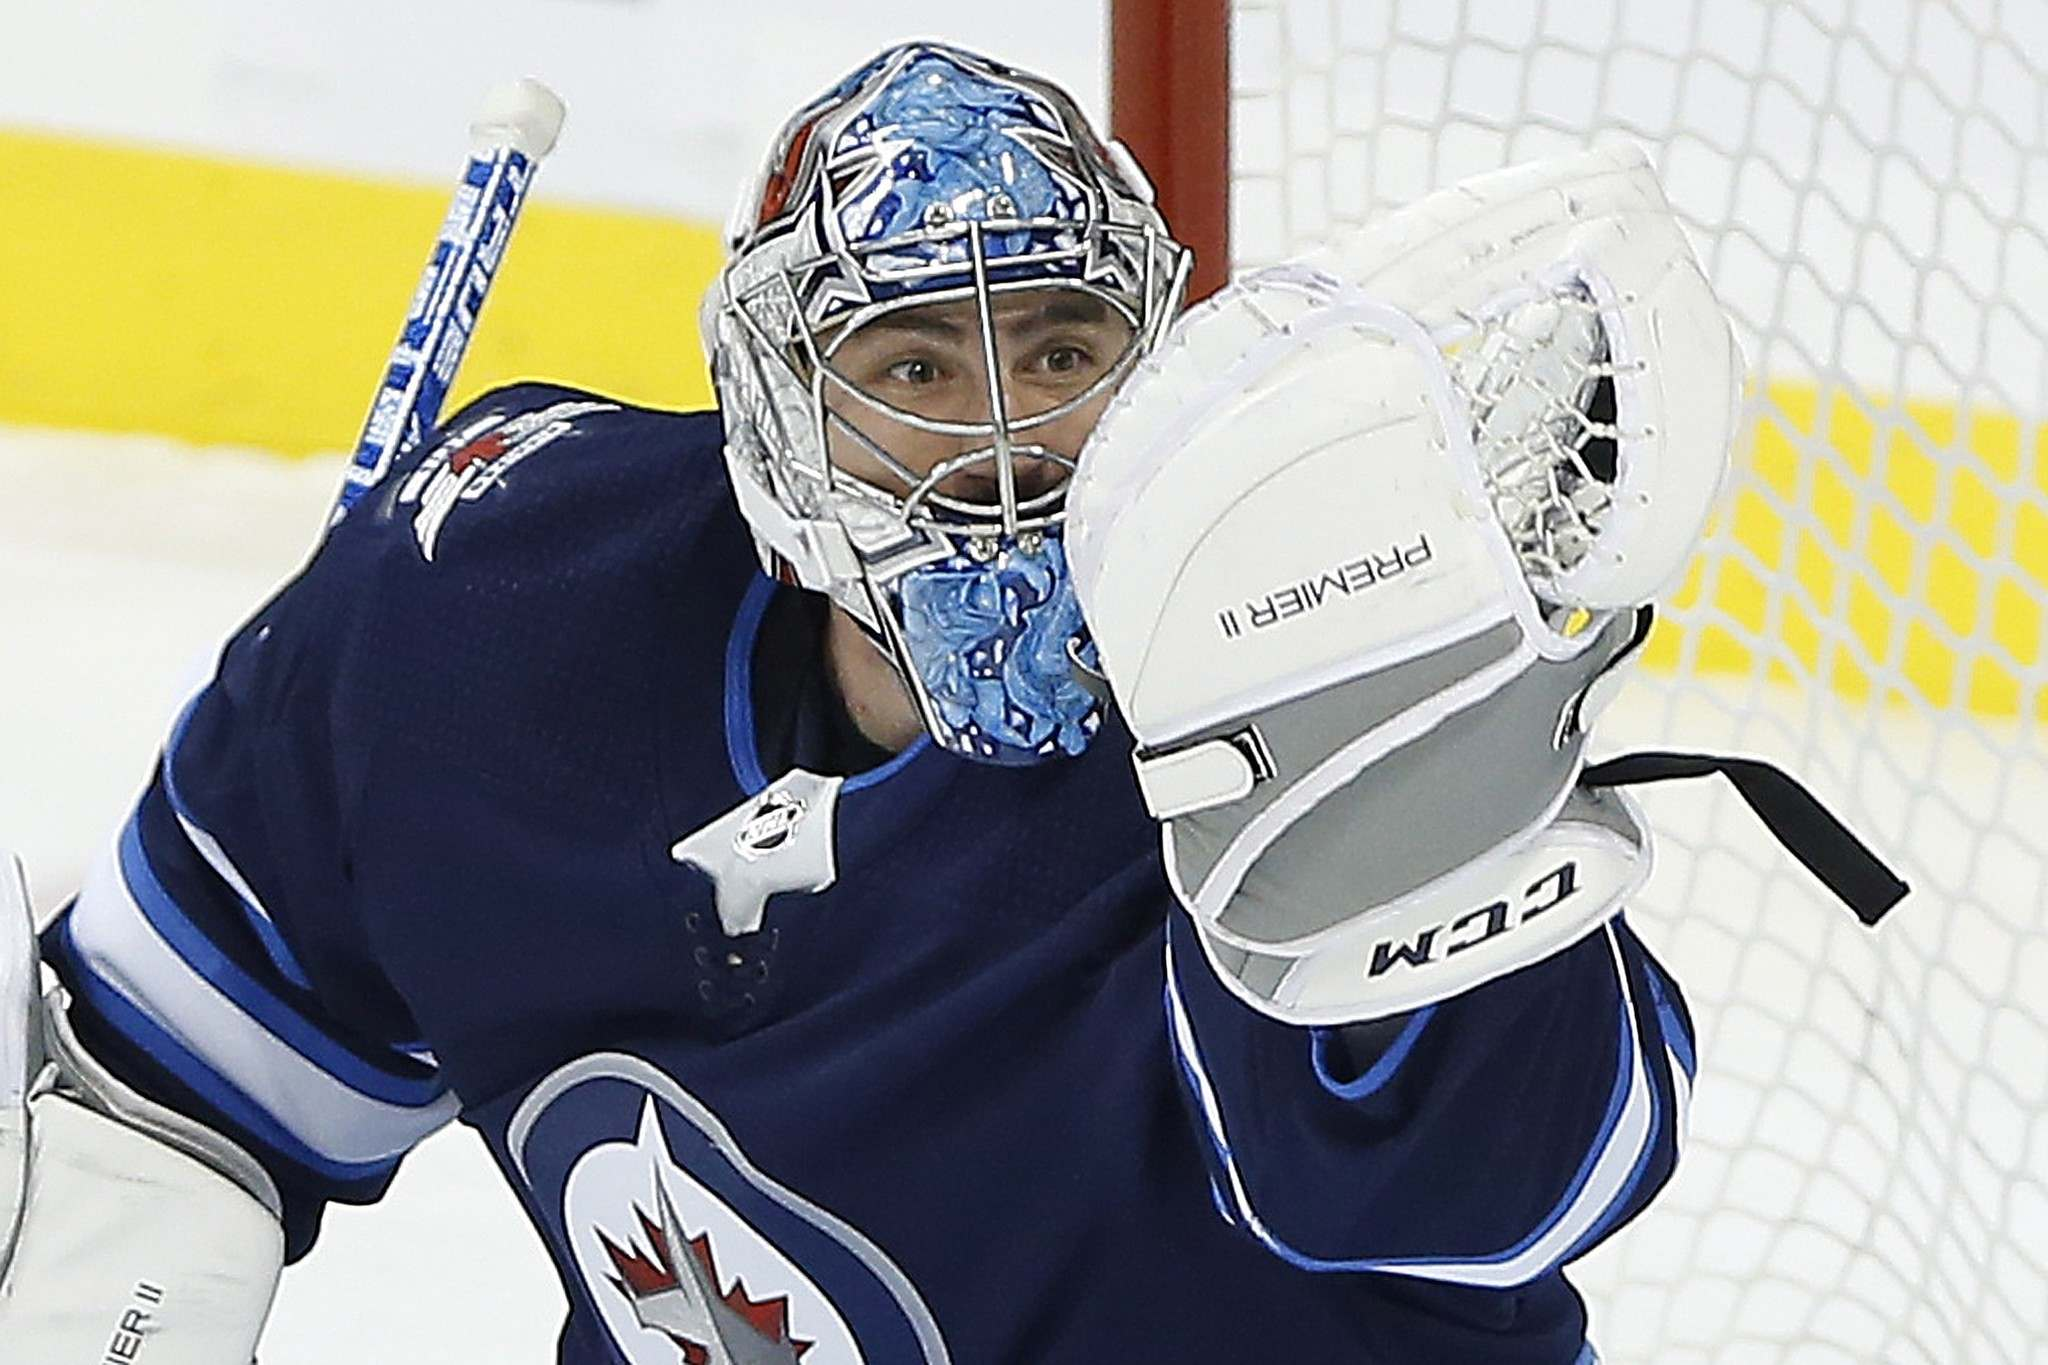 John Woods / The Canadian Press</p><p>Winnipeg Jets goaltender Connor Hellebuyck keeps his eye on the puck as he makes a save.</p>